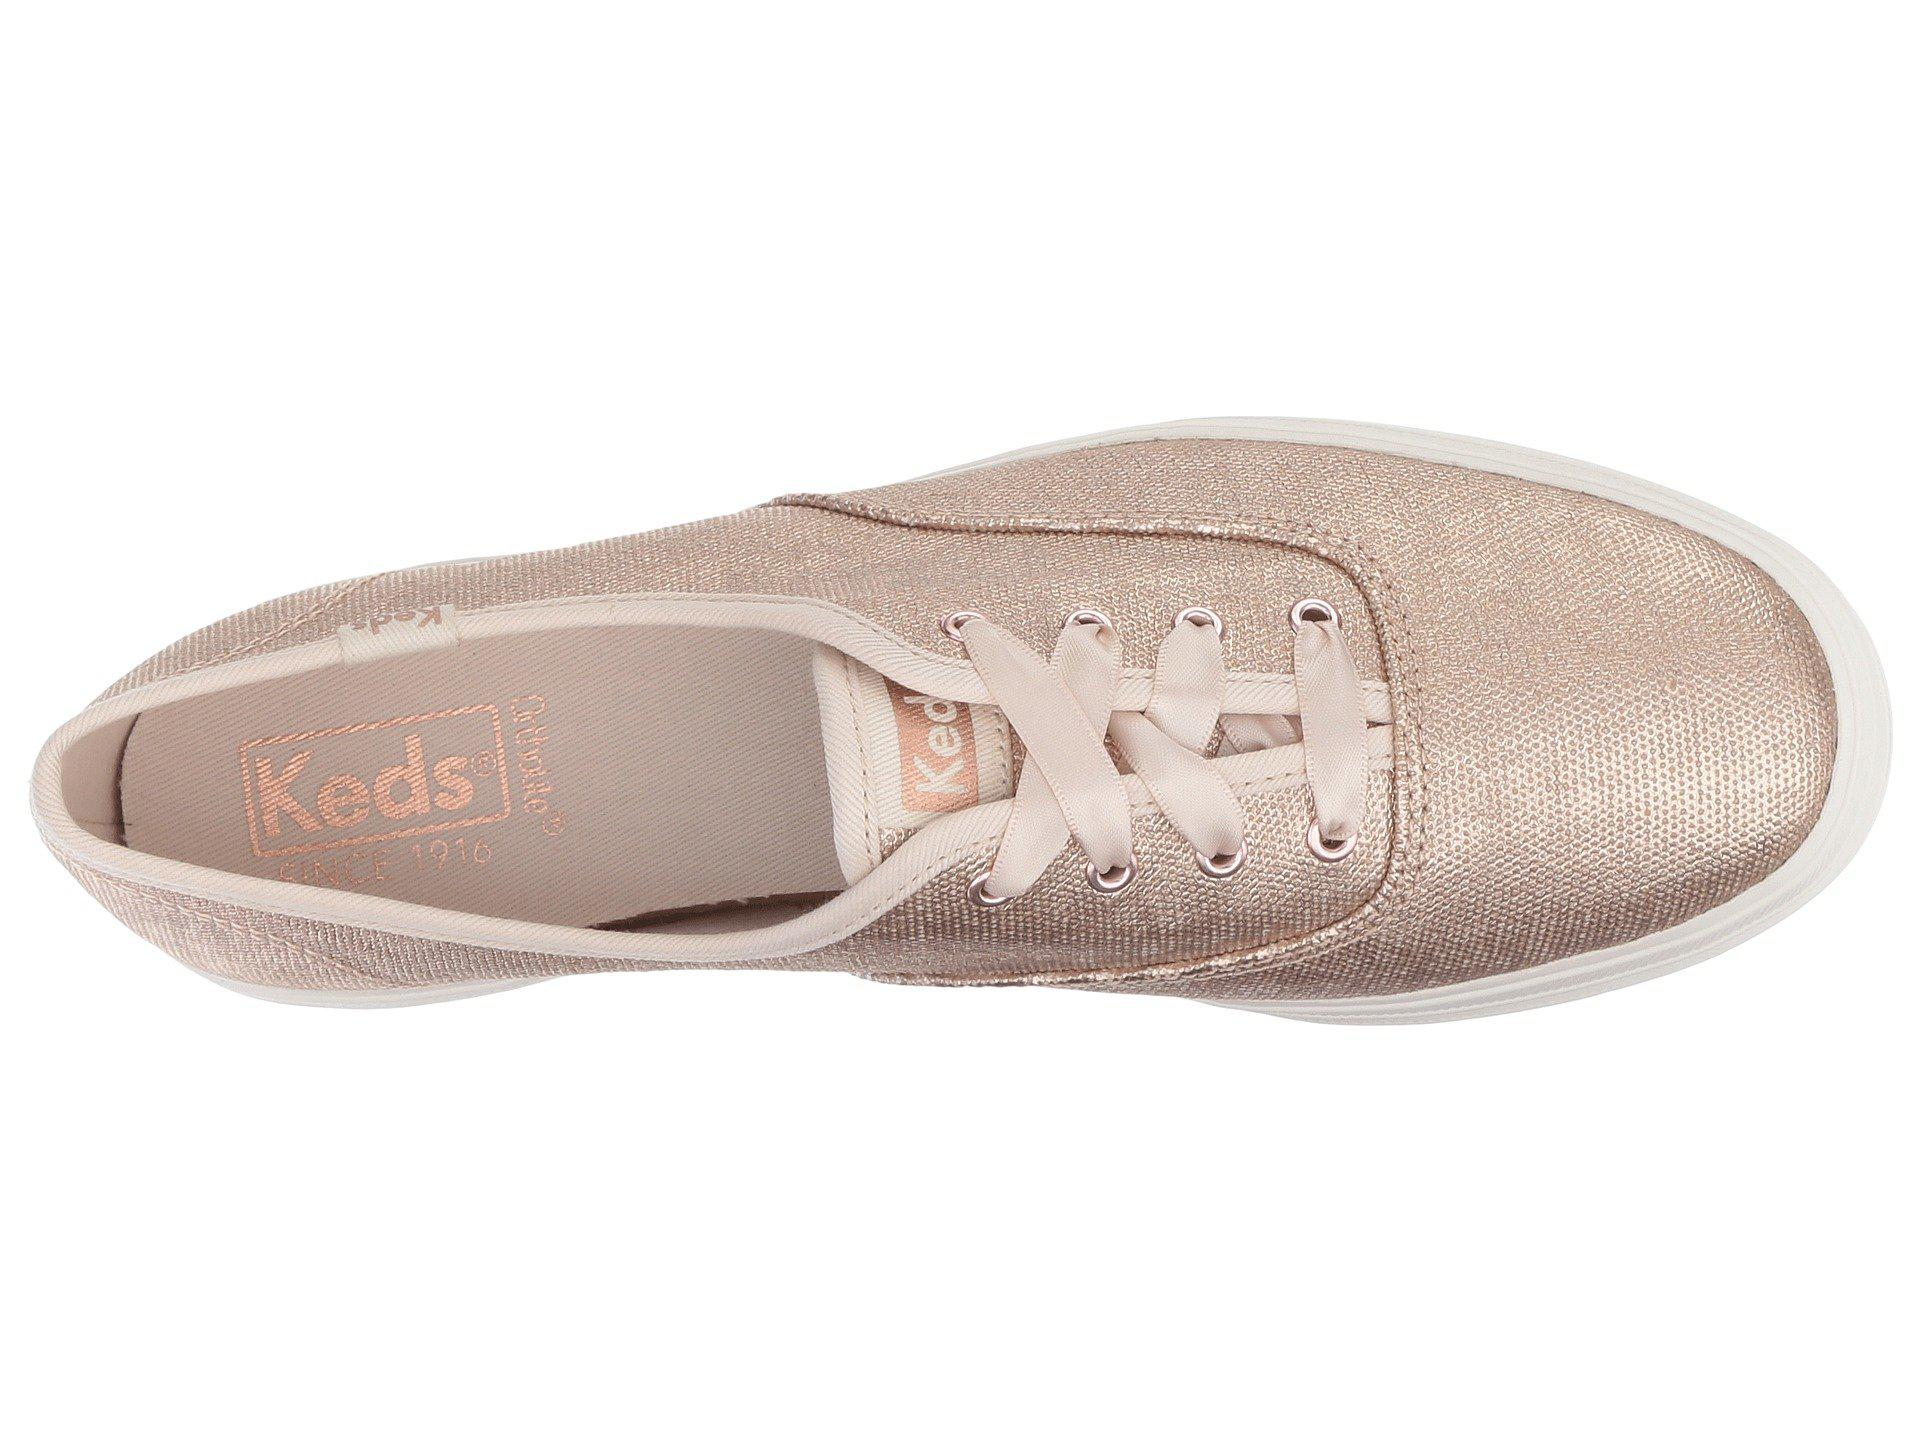 ff6124c84139 Keds Triple Matte Brushed Metallic (rose Gold) Women s Lace Up ...